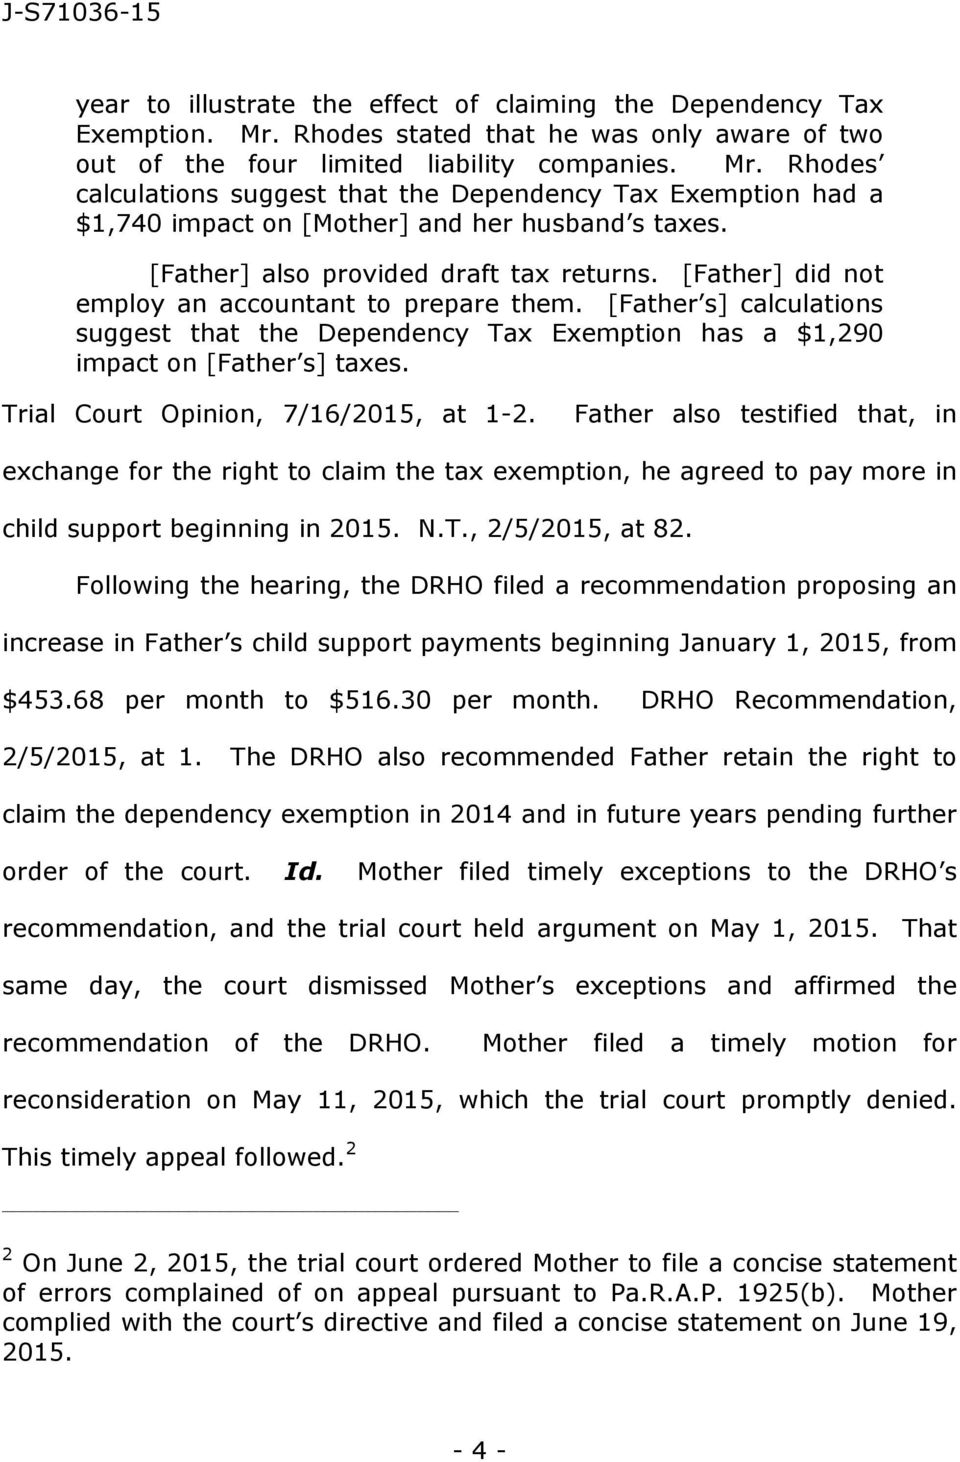 [Father s] calculations suggest that the Dependency Tax Exemption has a $1,290 impact on [Father s] taxes. Trial Court Opinion, 7/16/2015, at 1-2.